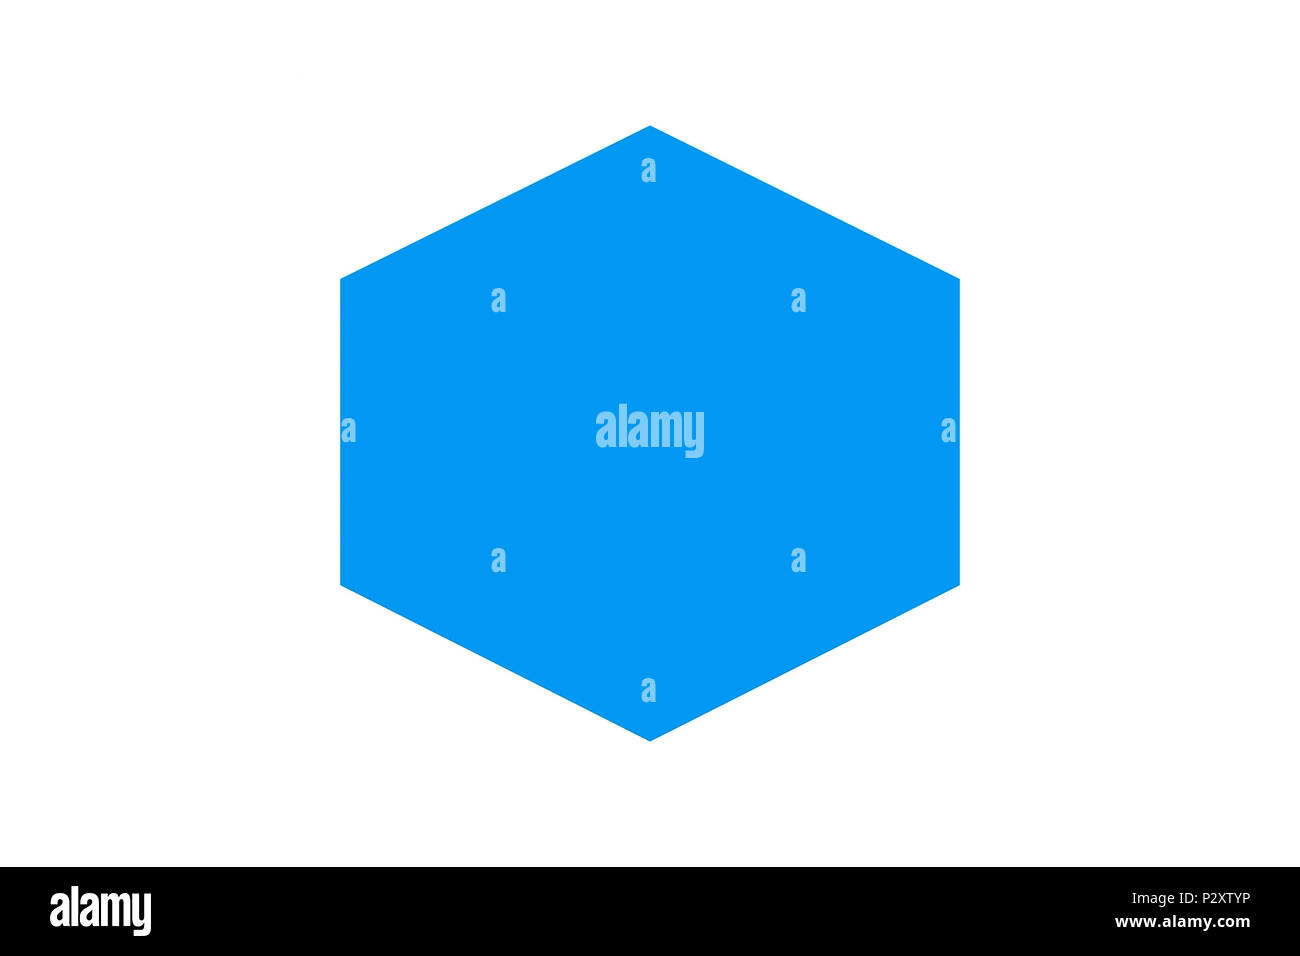 blue decahedron blue geometric figure on a white background stock